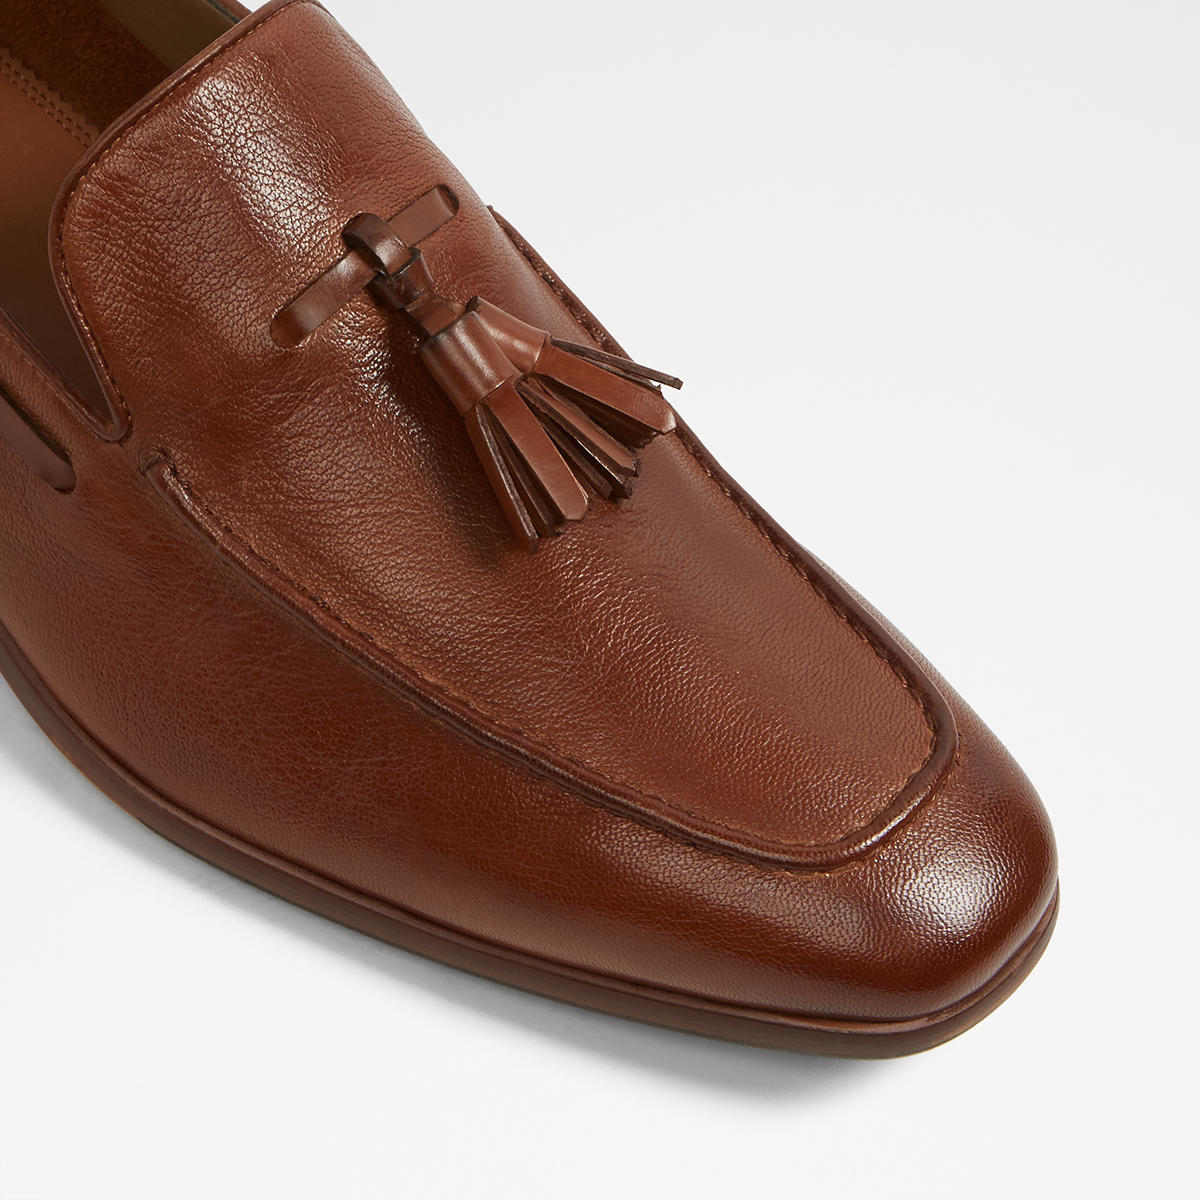 Zoacien Tassel Loafers In Brown - Brown Aldo Gtbv9HL5z7